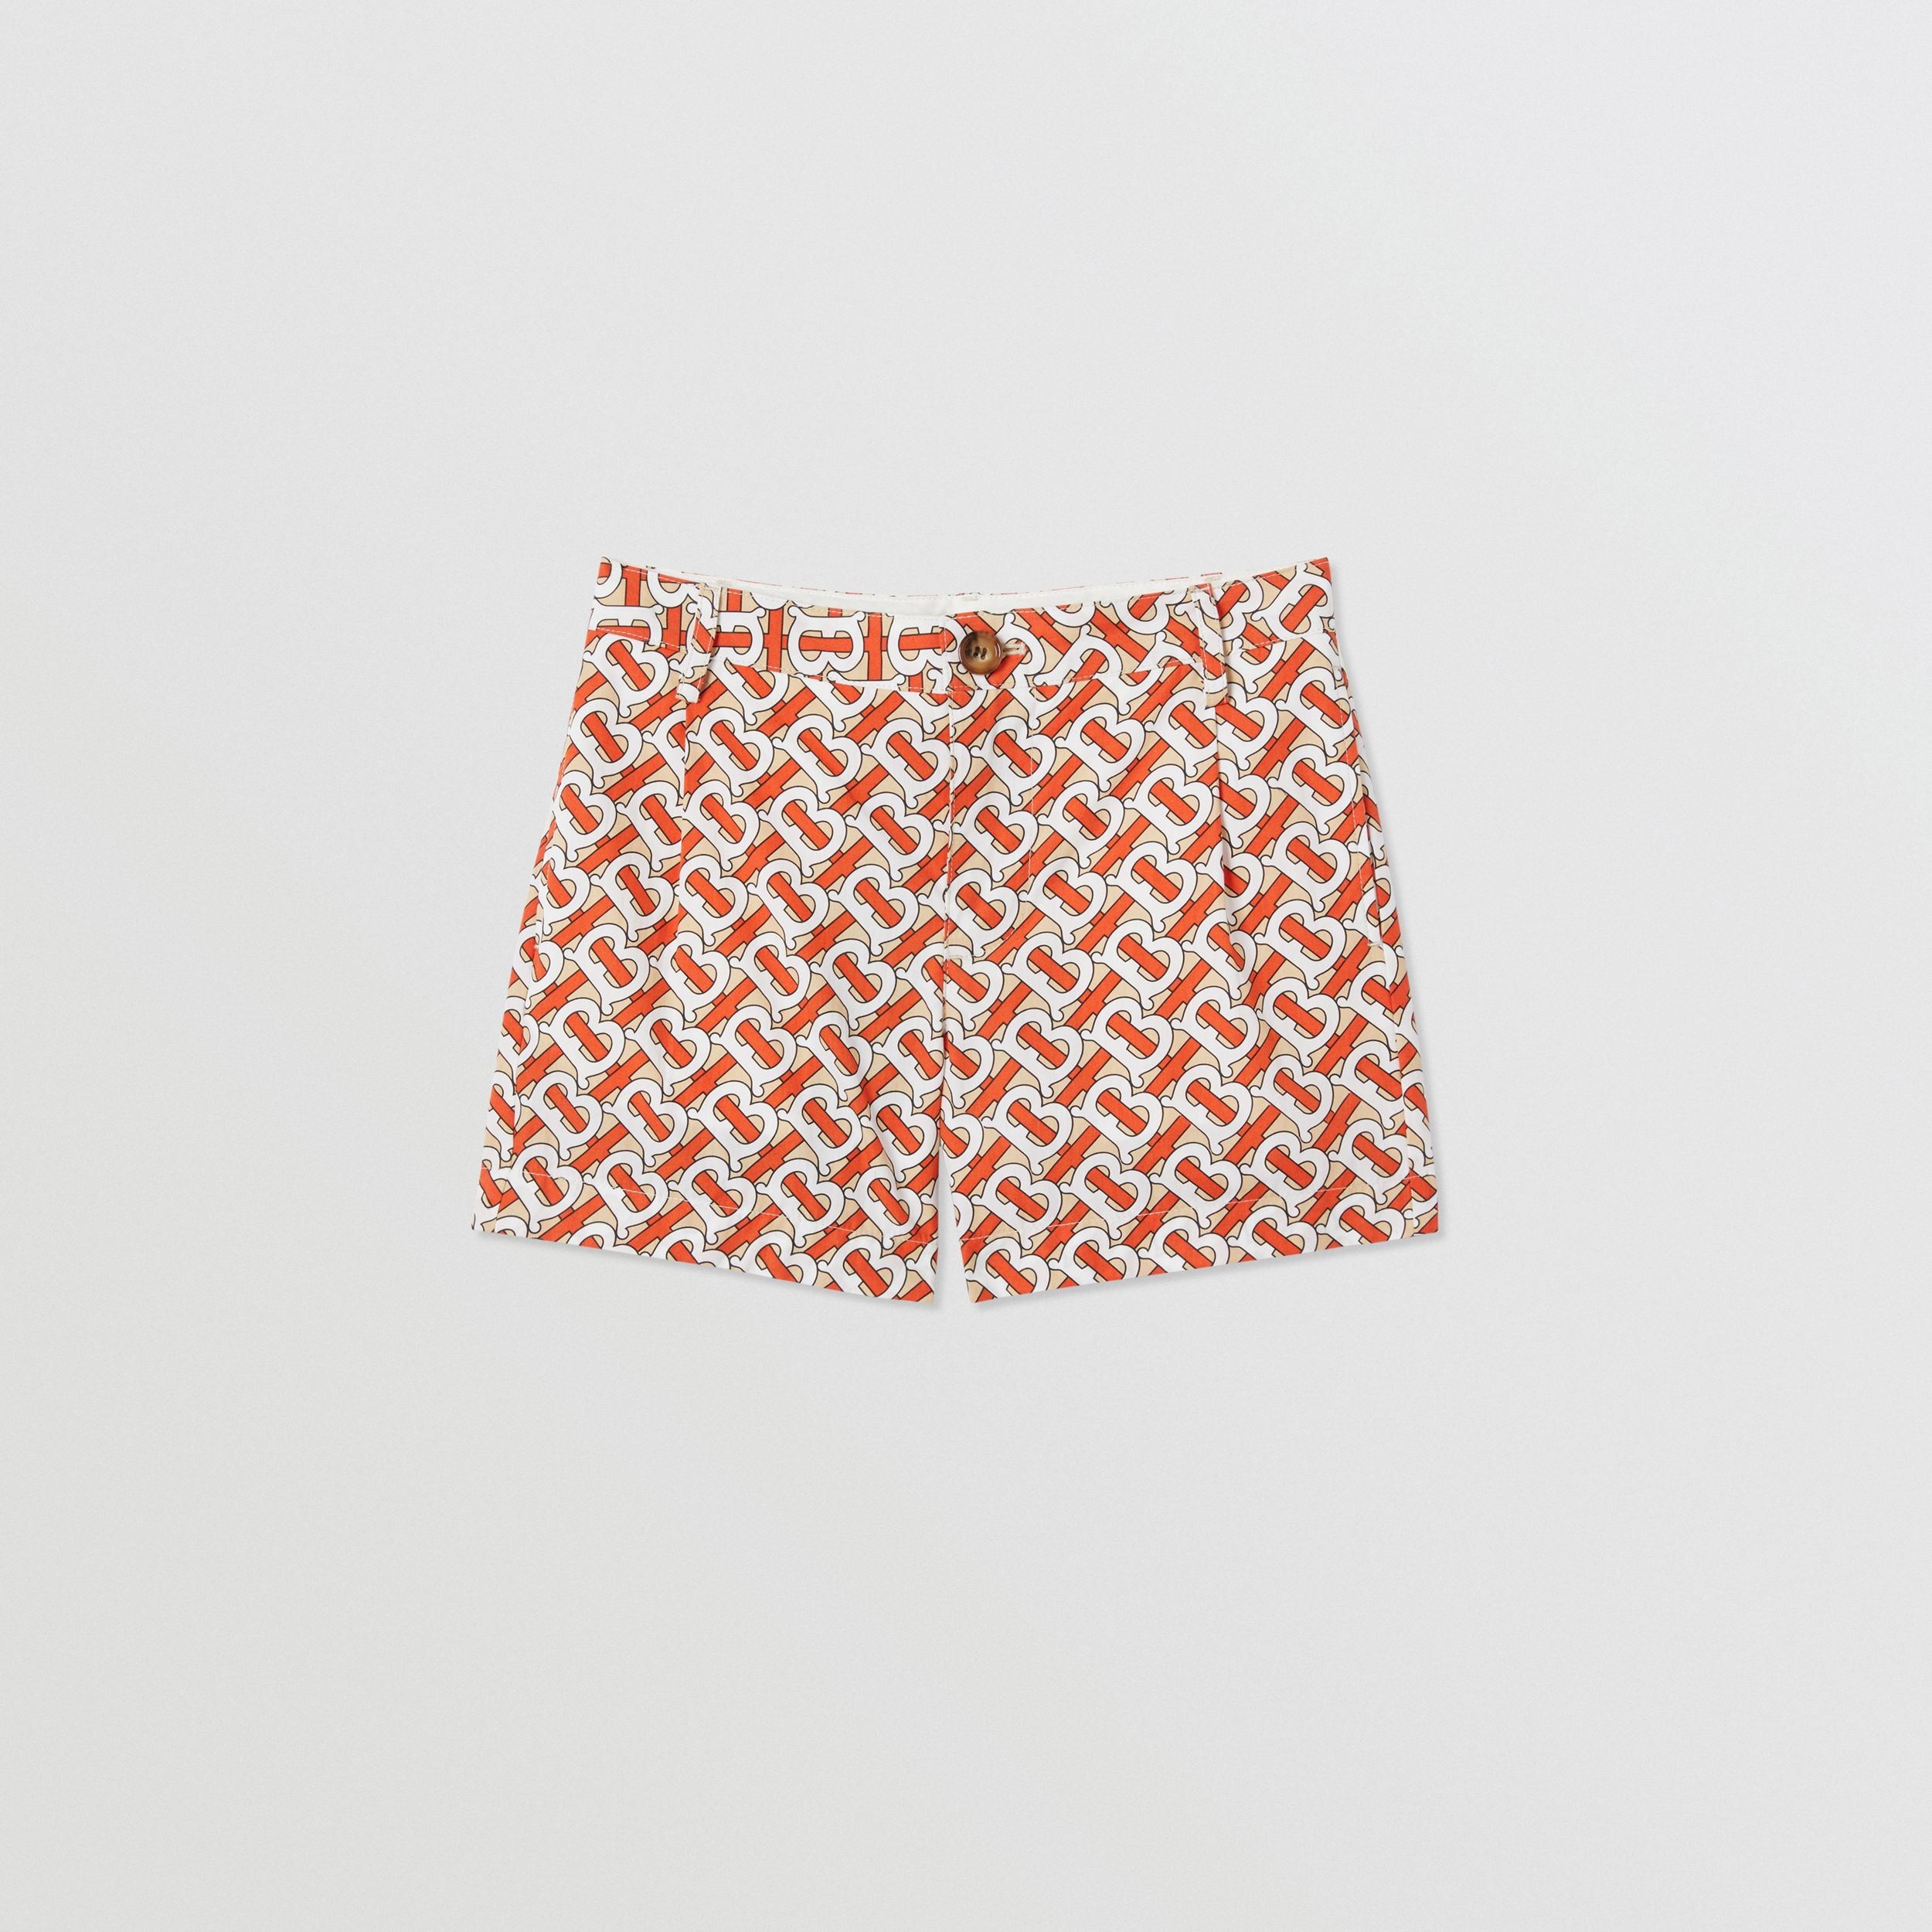 Monogram Print Cotton Poplin Shorts in Vermilion Red | Burberry - 1